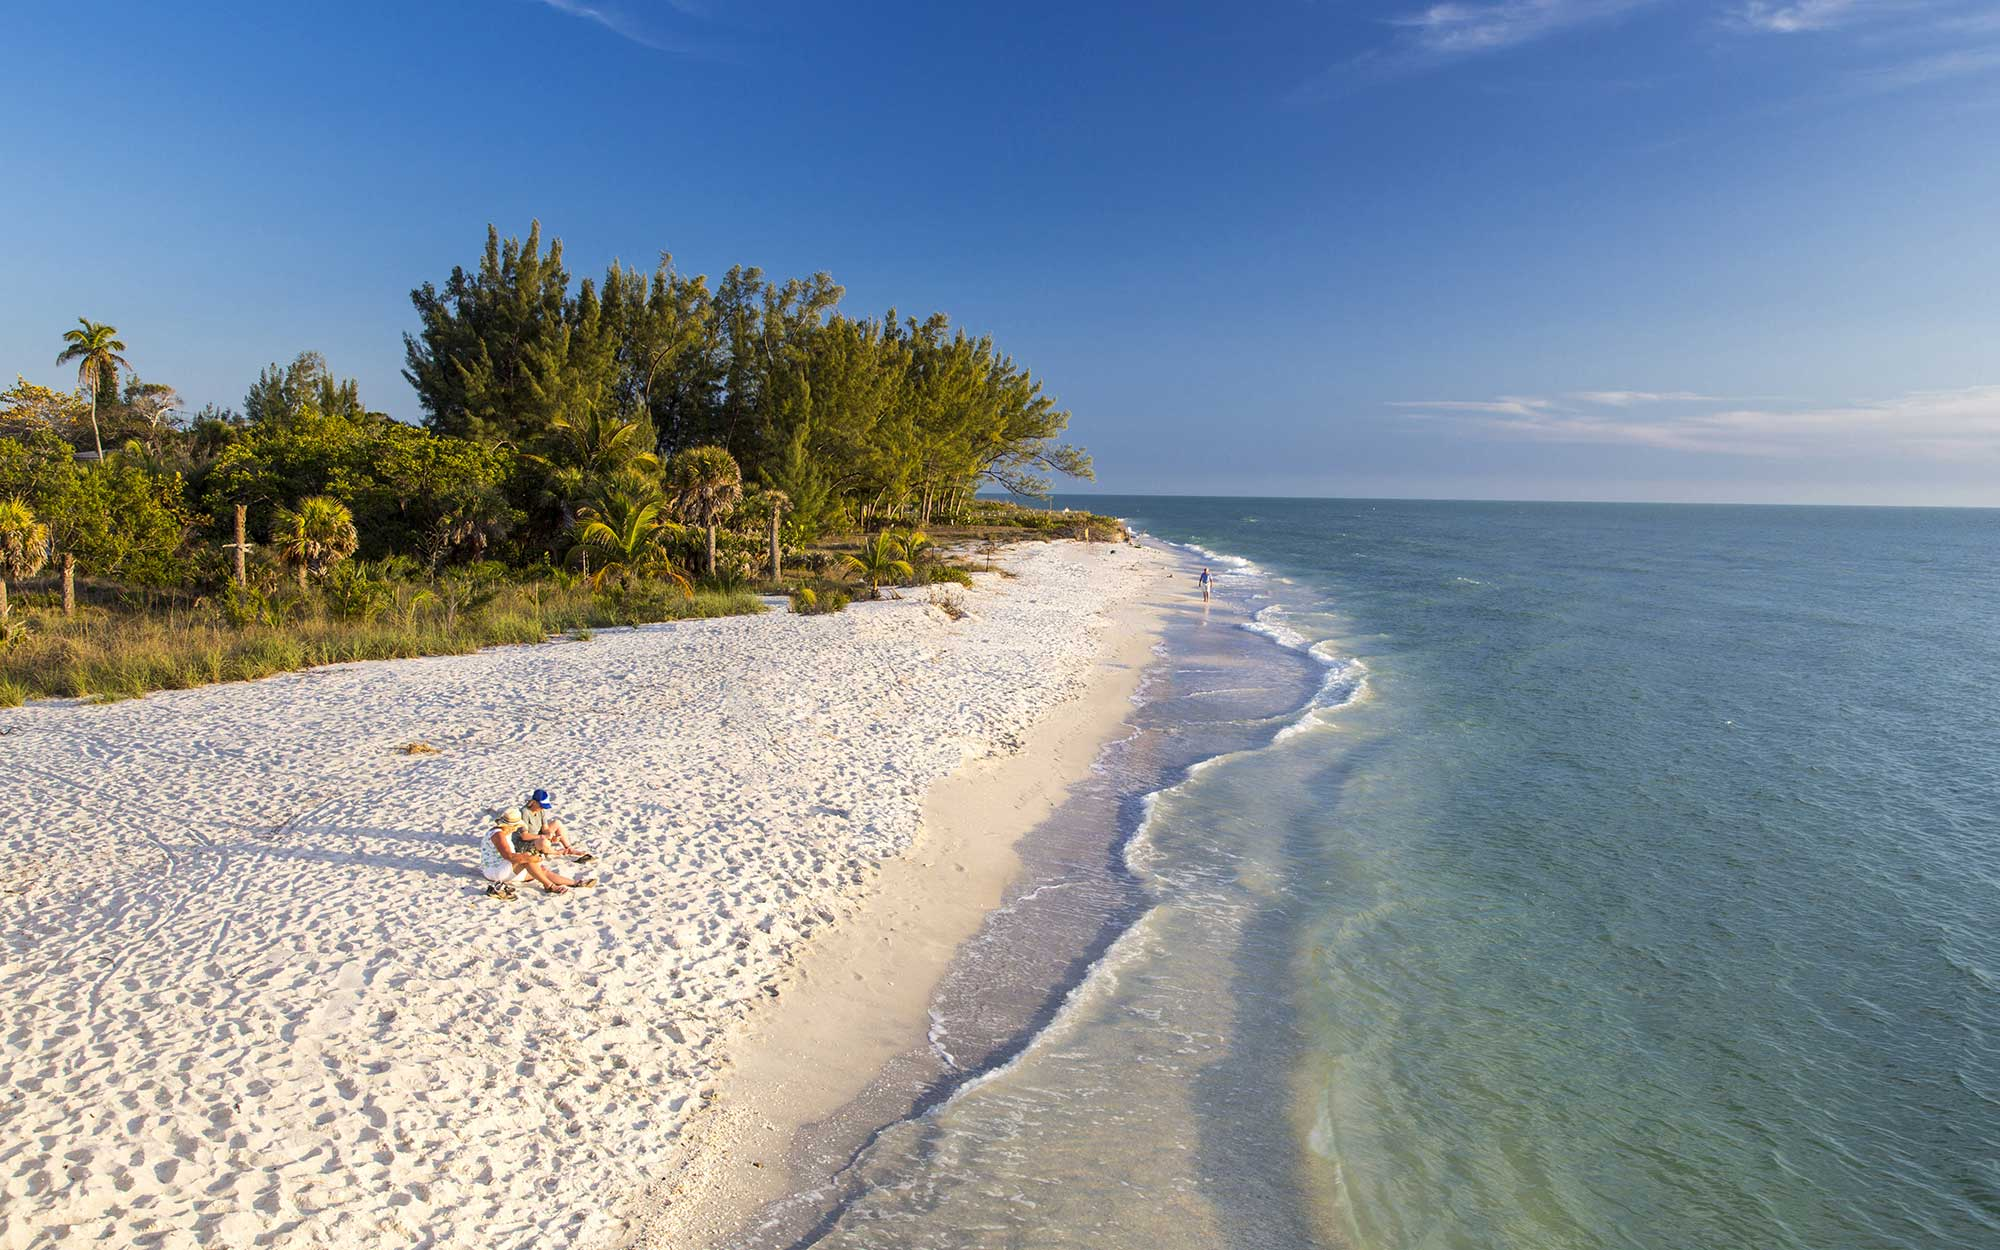 White sand beach at sunset on Sanibel Island, Florida, USA